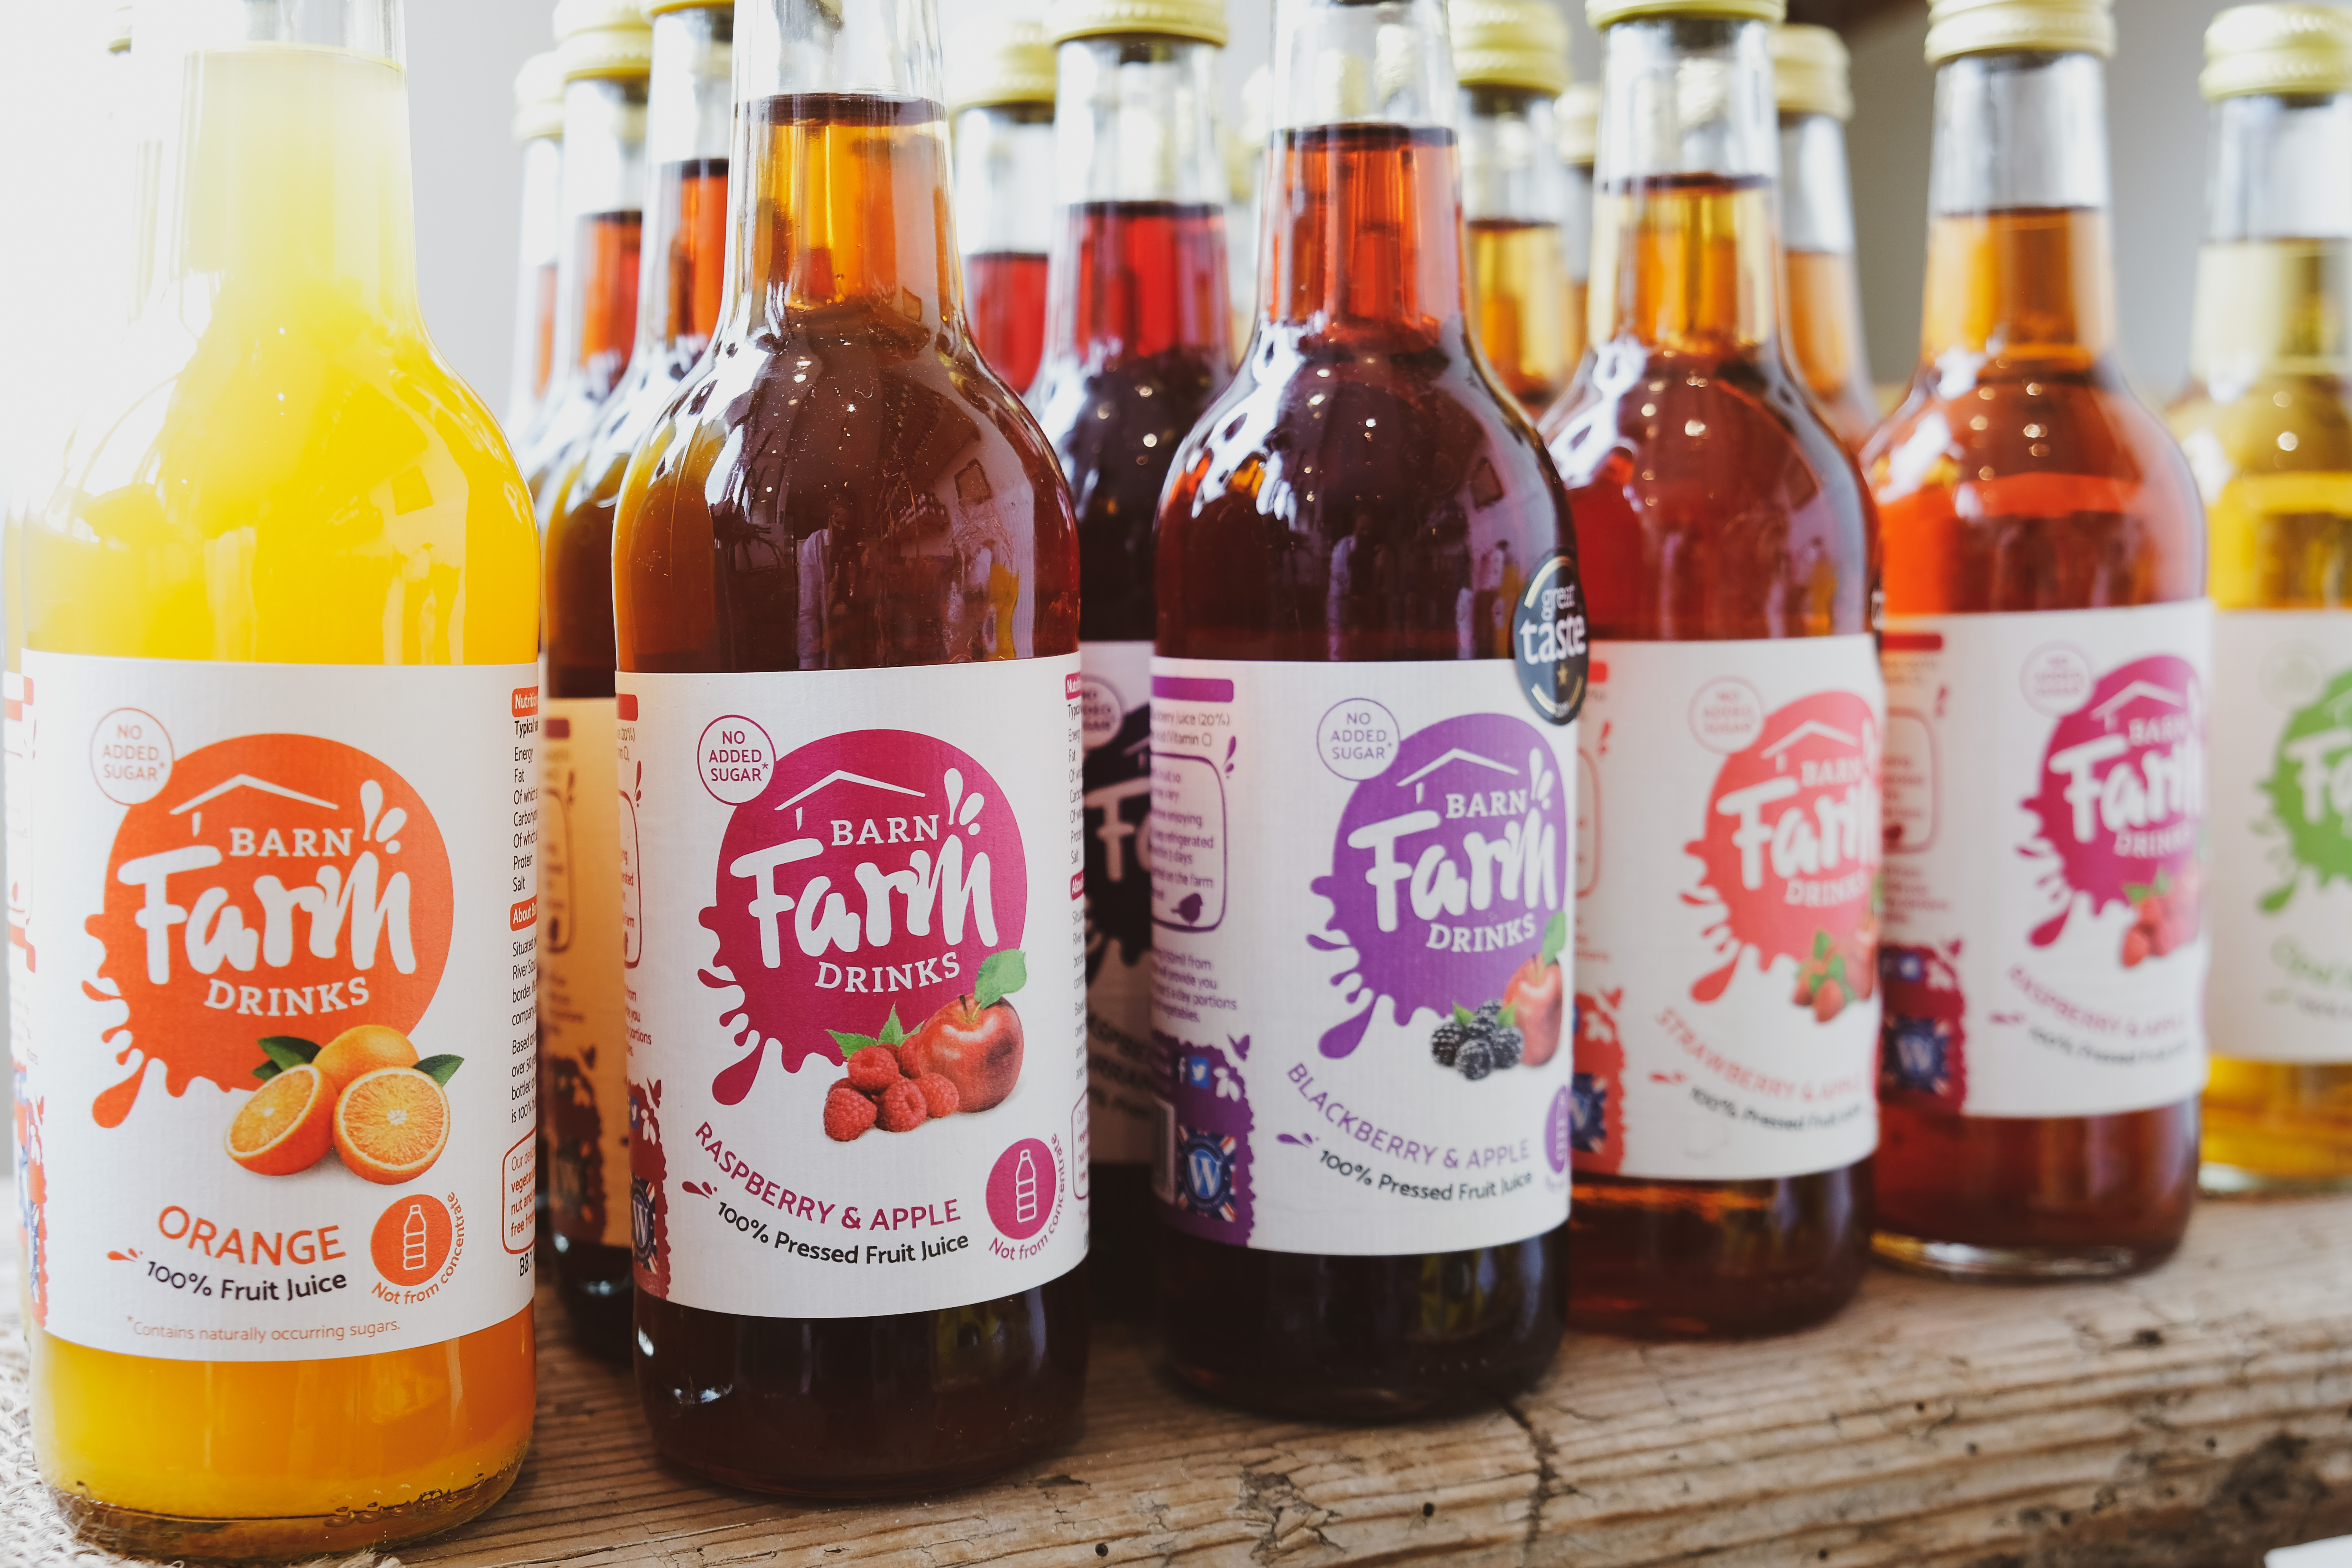 Barn Farm Drinks range available at the Essex Produce Co. in Kelvedon, Essex.